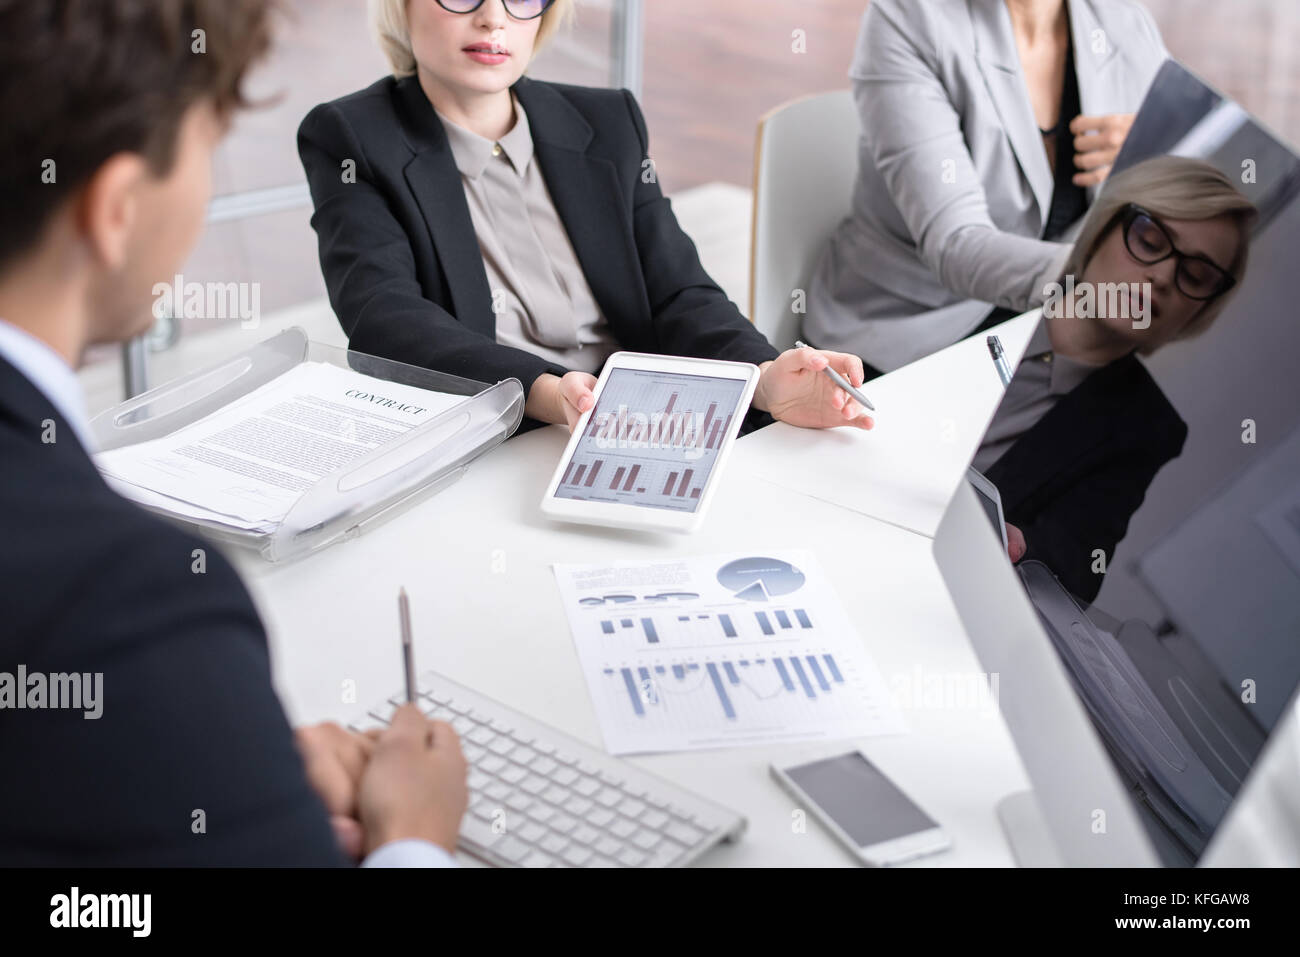 Meeting of Business Analysts - Stock Image